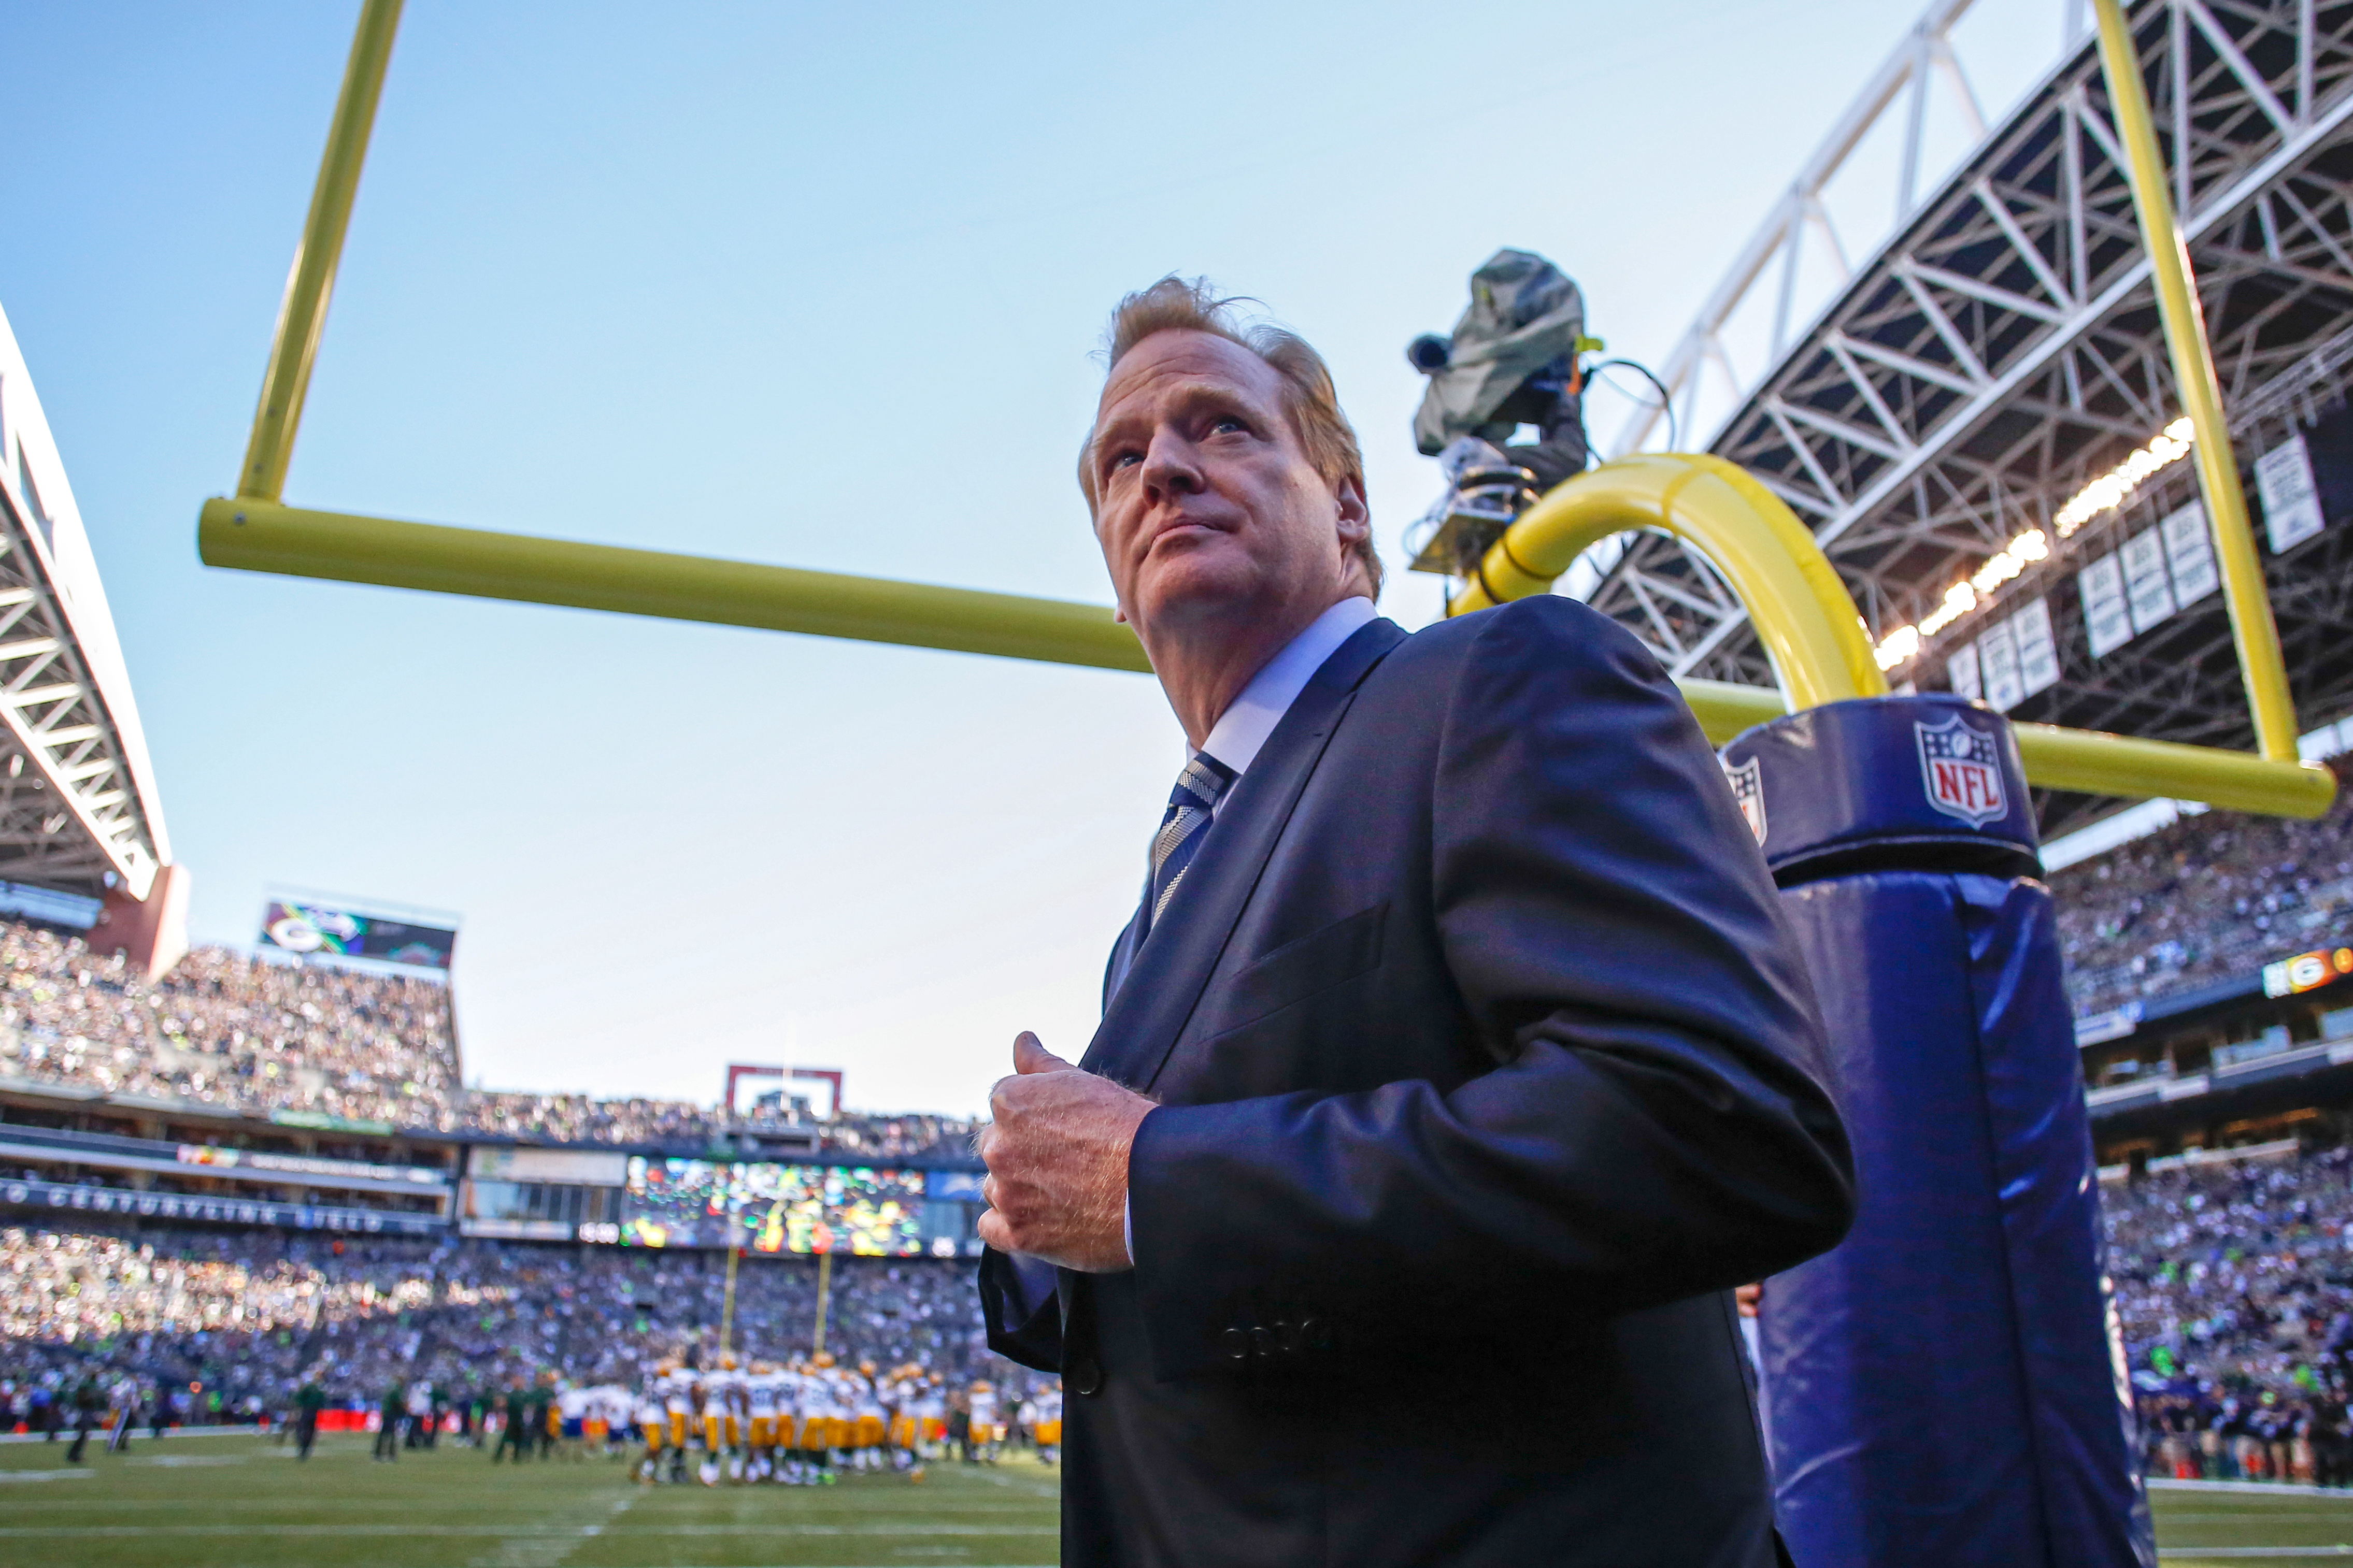 NFL commissioner Roger Goodell walks the sidelines prior to the game between the Seattle Seahawks and the Green Bay Packers at CenturyLink Field in Seattle on Sept. 4, 2014